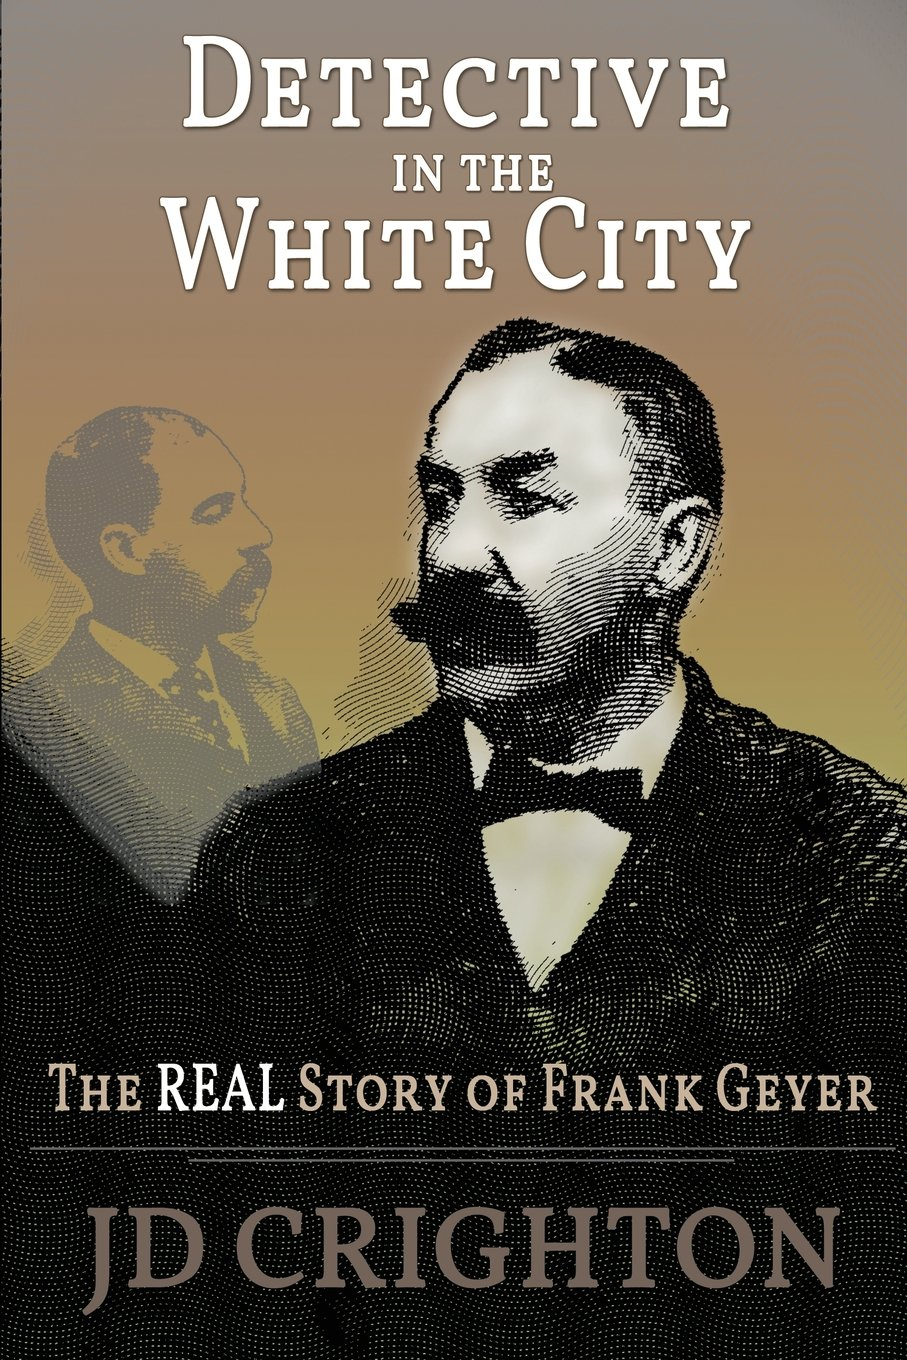 Detective in the White City: The Real Story of Frank Geyer: JD Crighton:  9781946100023: Amazon.com: Books